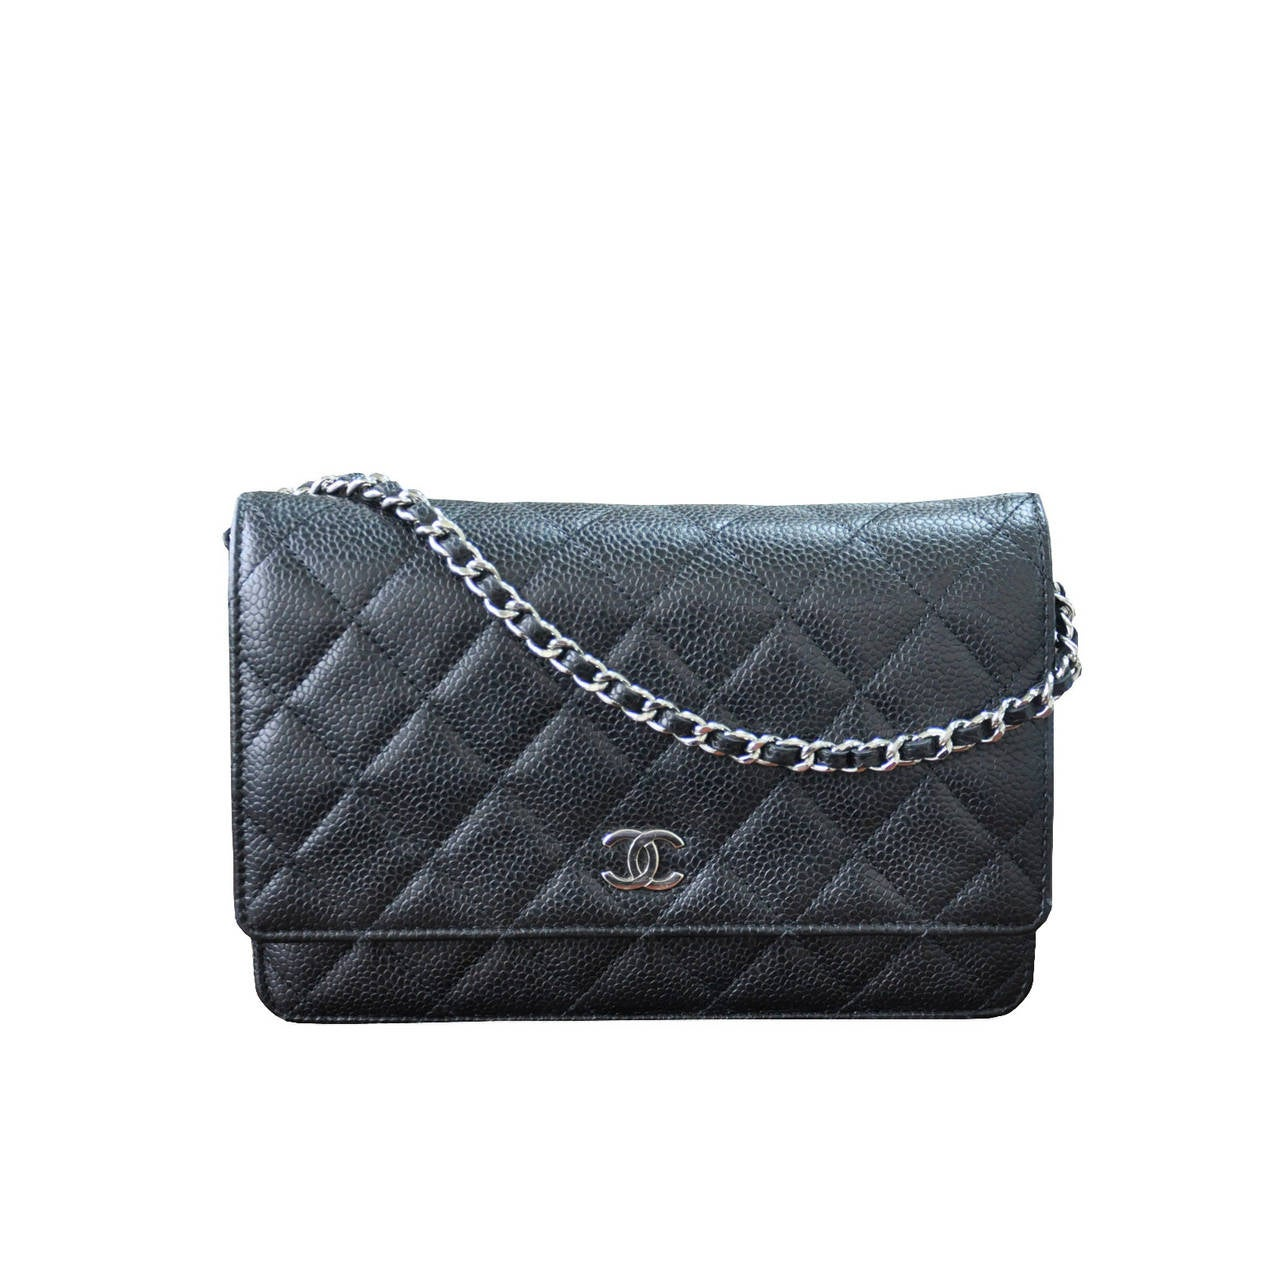 Chanel WOC Wallet on Chain Black Caviar Leather Crossbody Handbag at 1stdibs 0943e0a5eb296